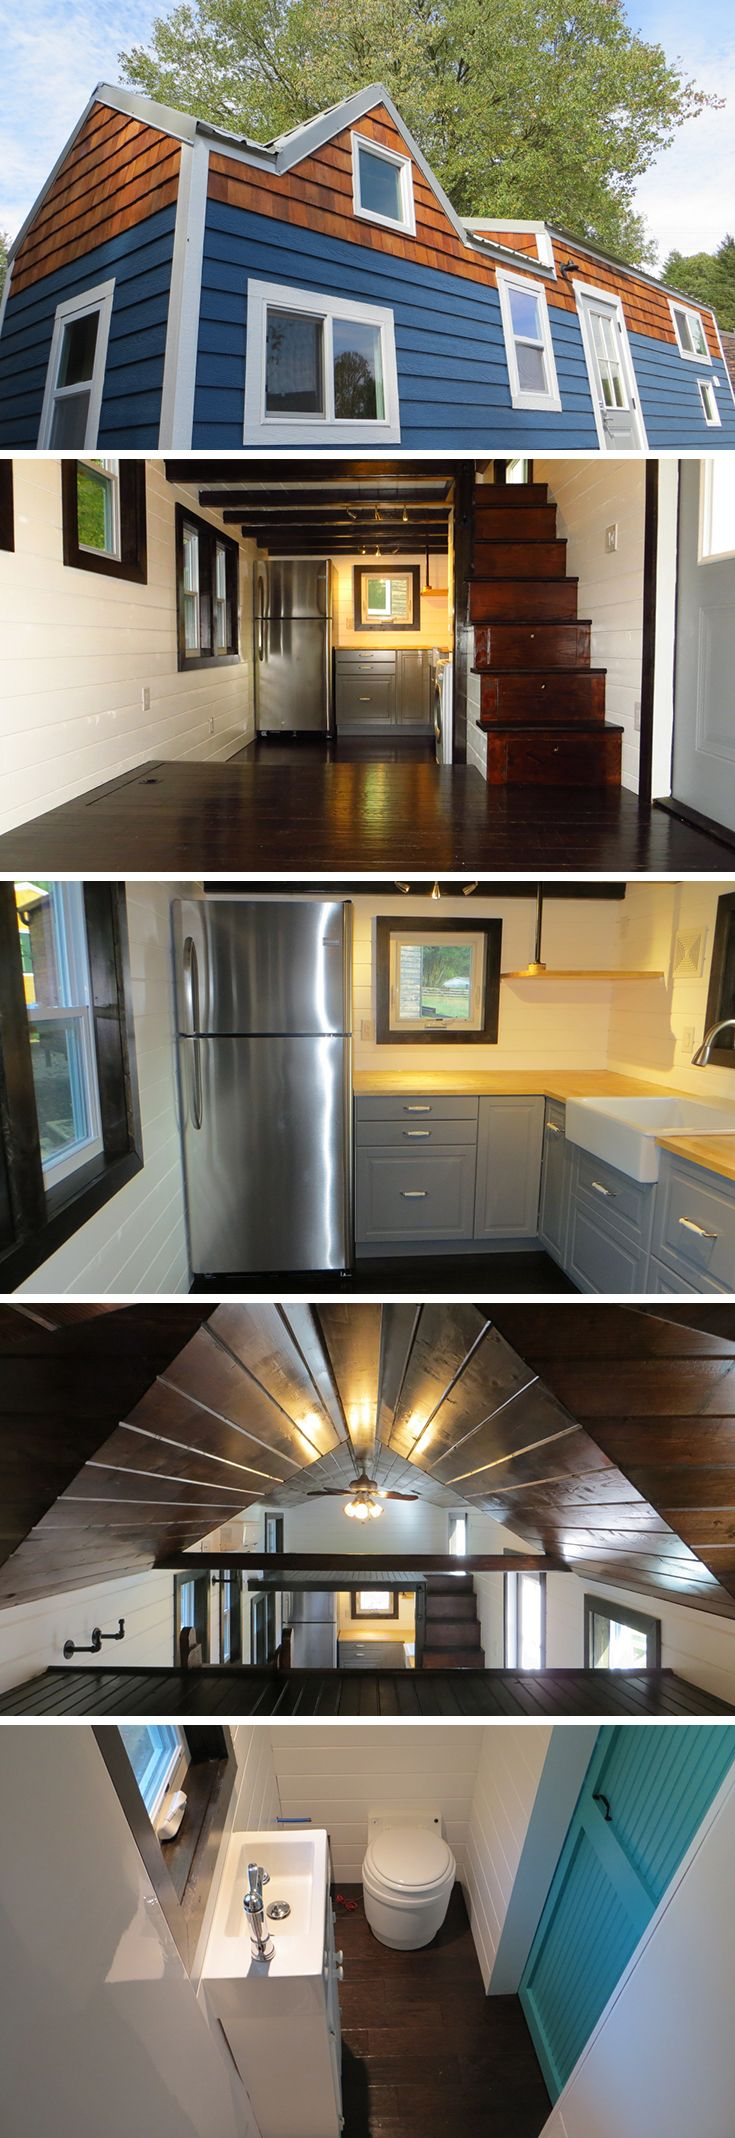 580 best Tiny houses and plans images